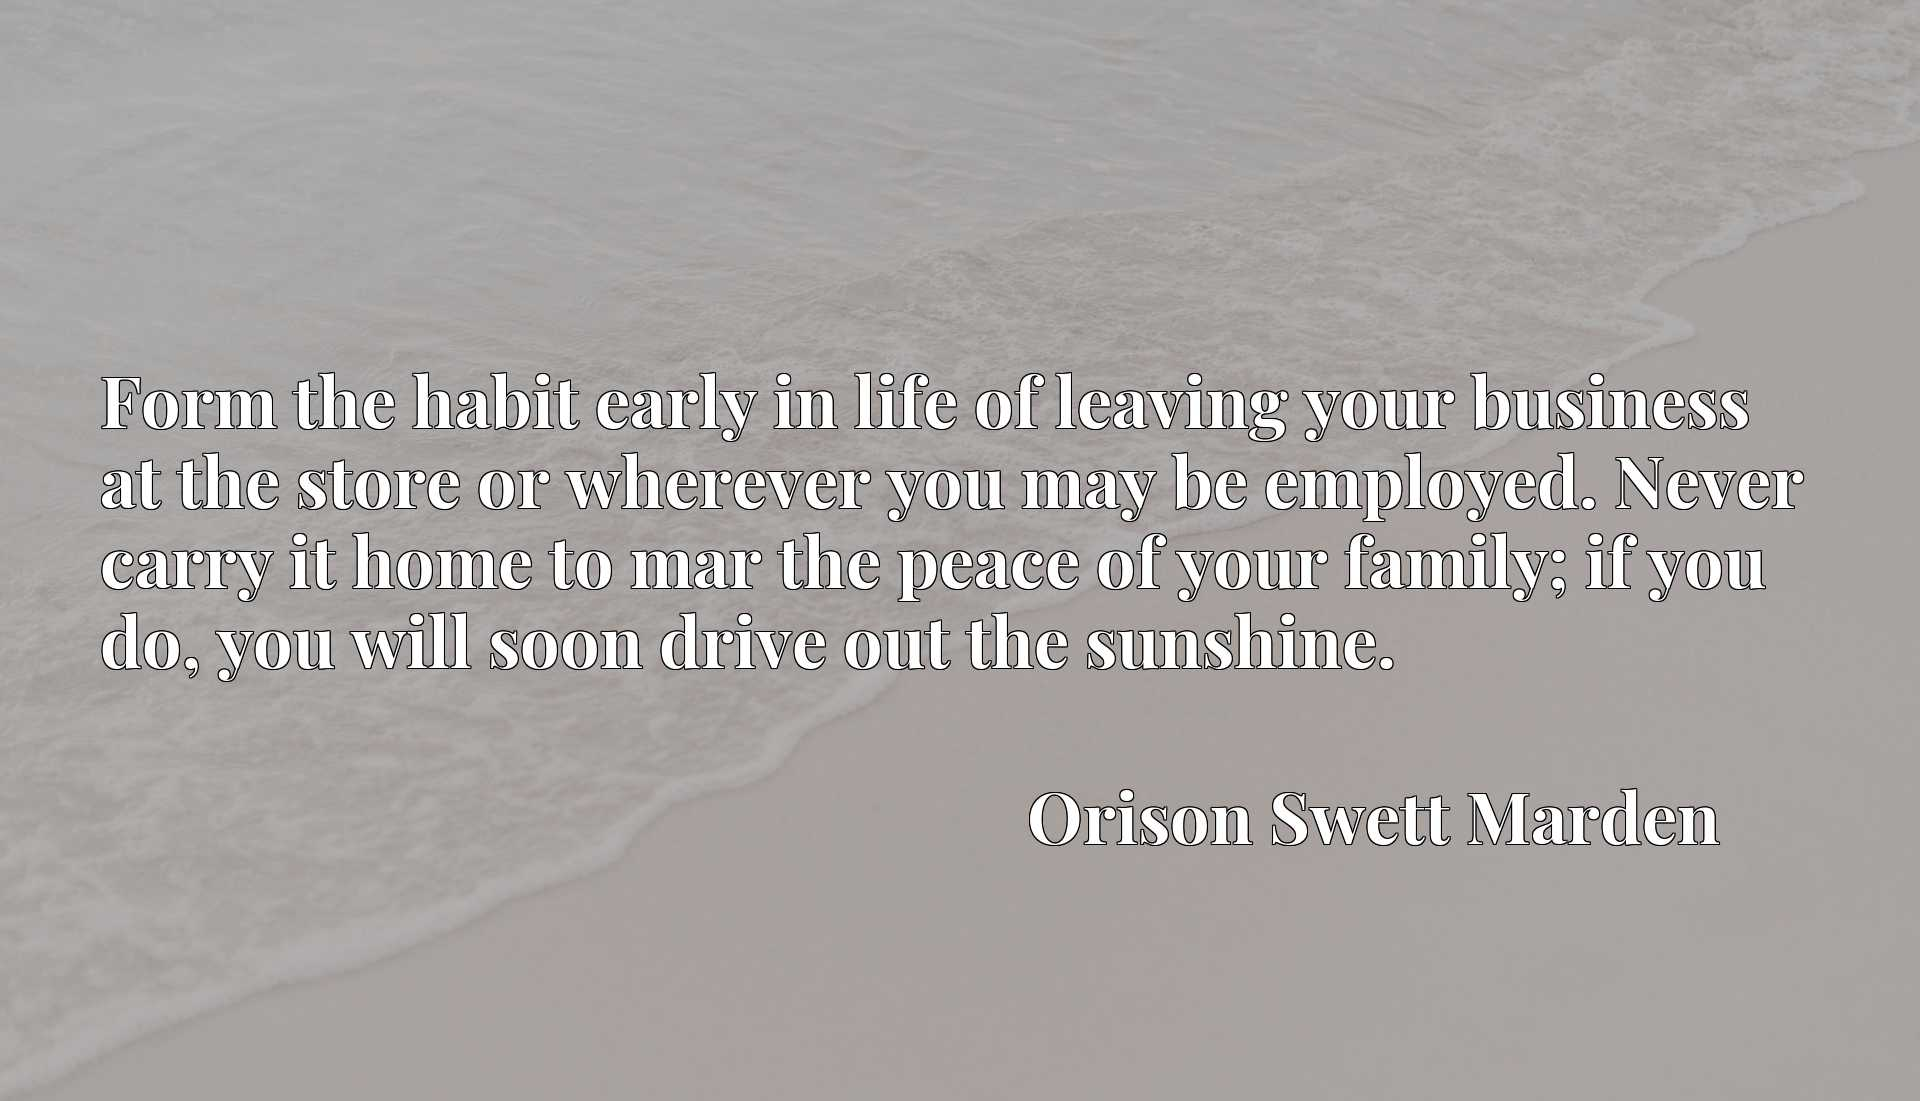 Form the habit early in life of leaving your business at the store or wherever you may be employed. Never carry it home to mar the peace of your family; if you do, you will soon drive out the sunshine.